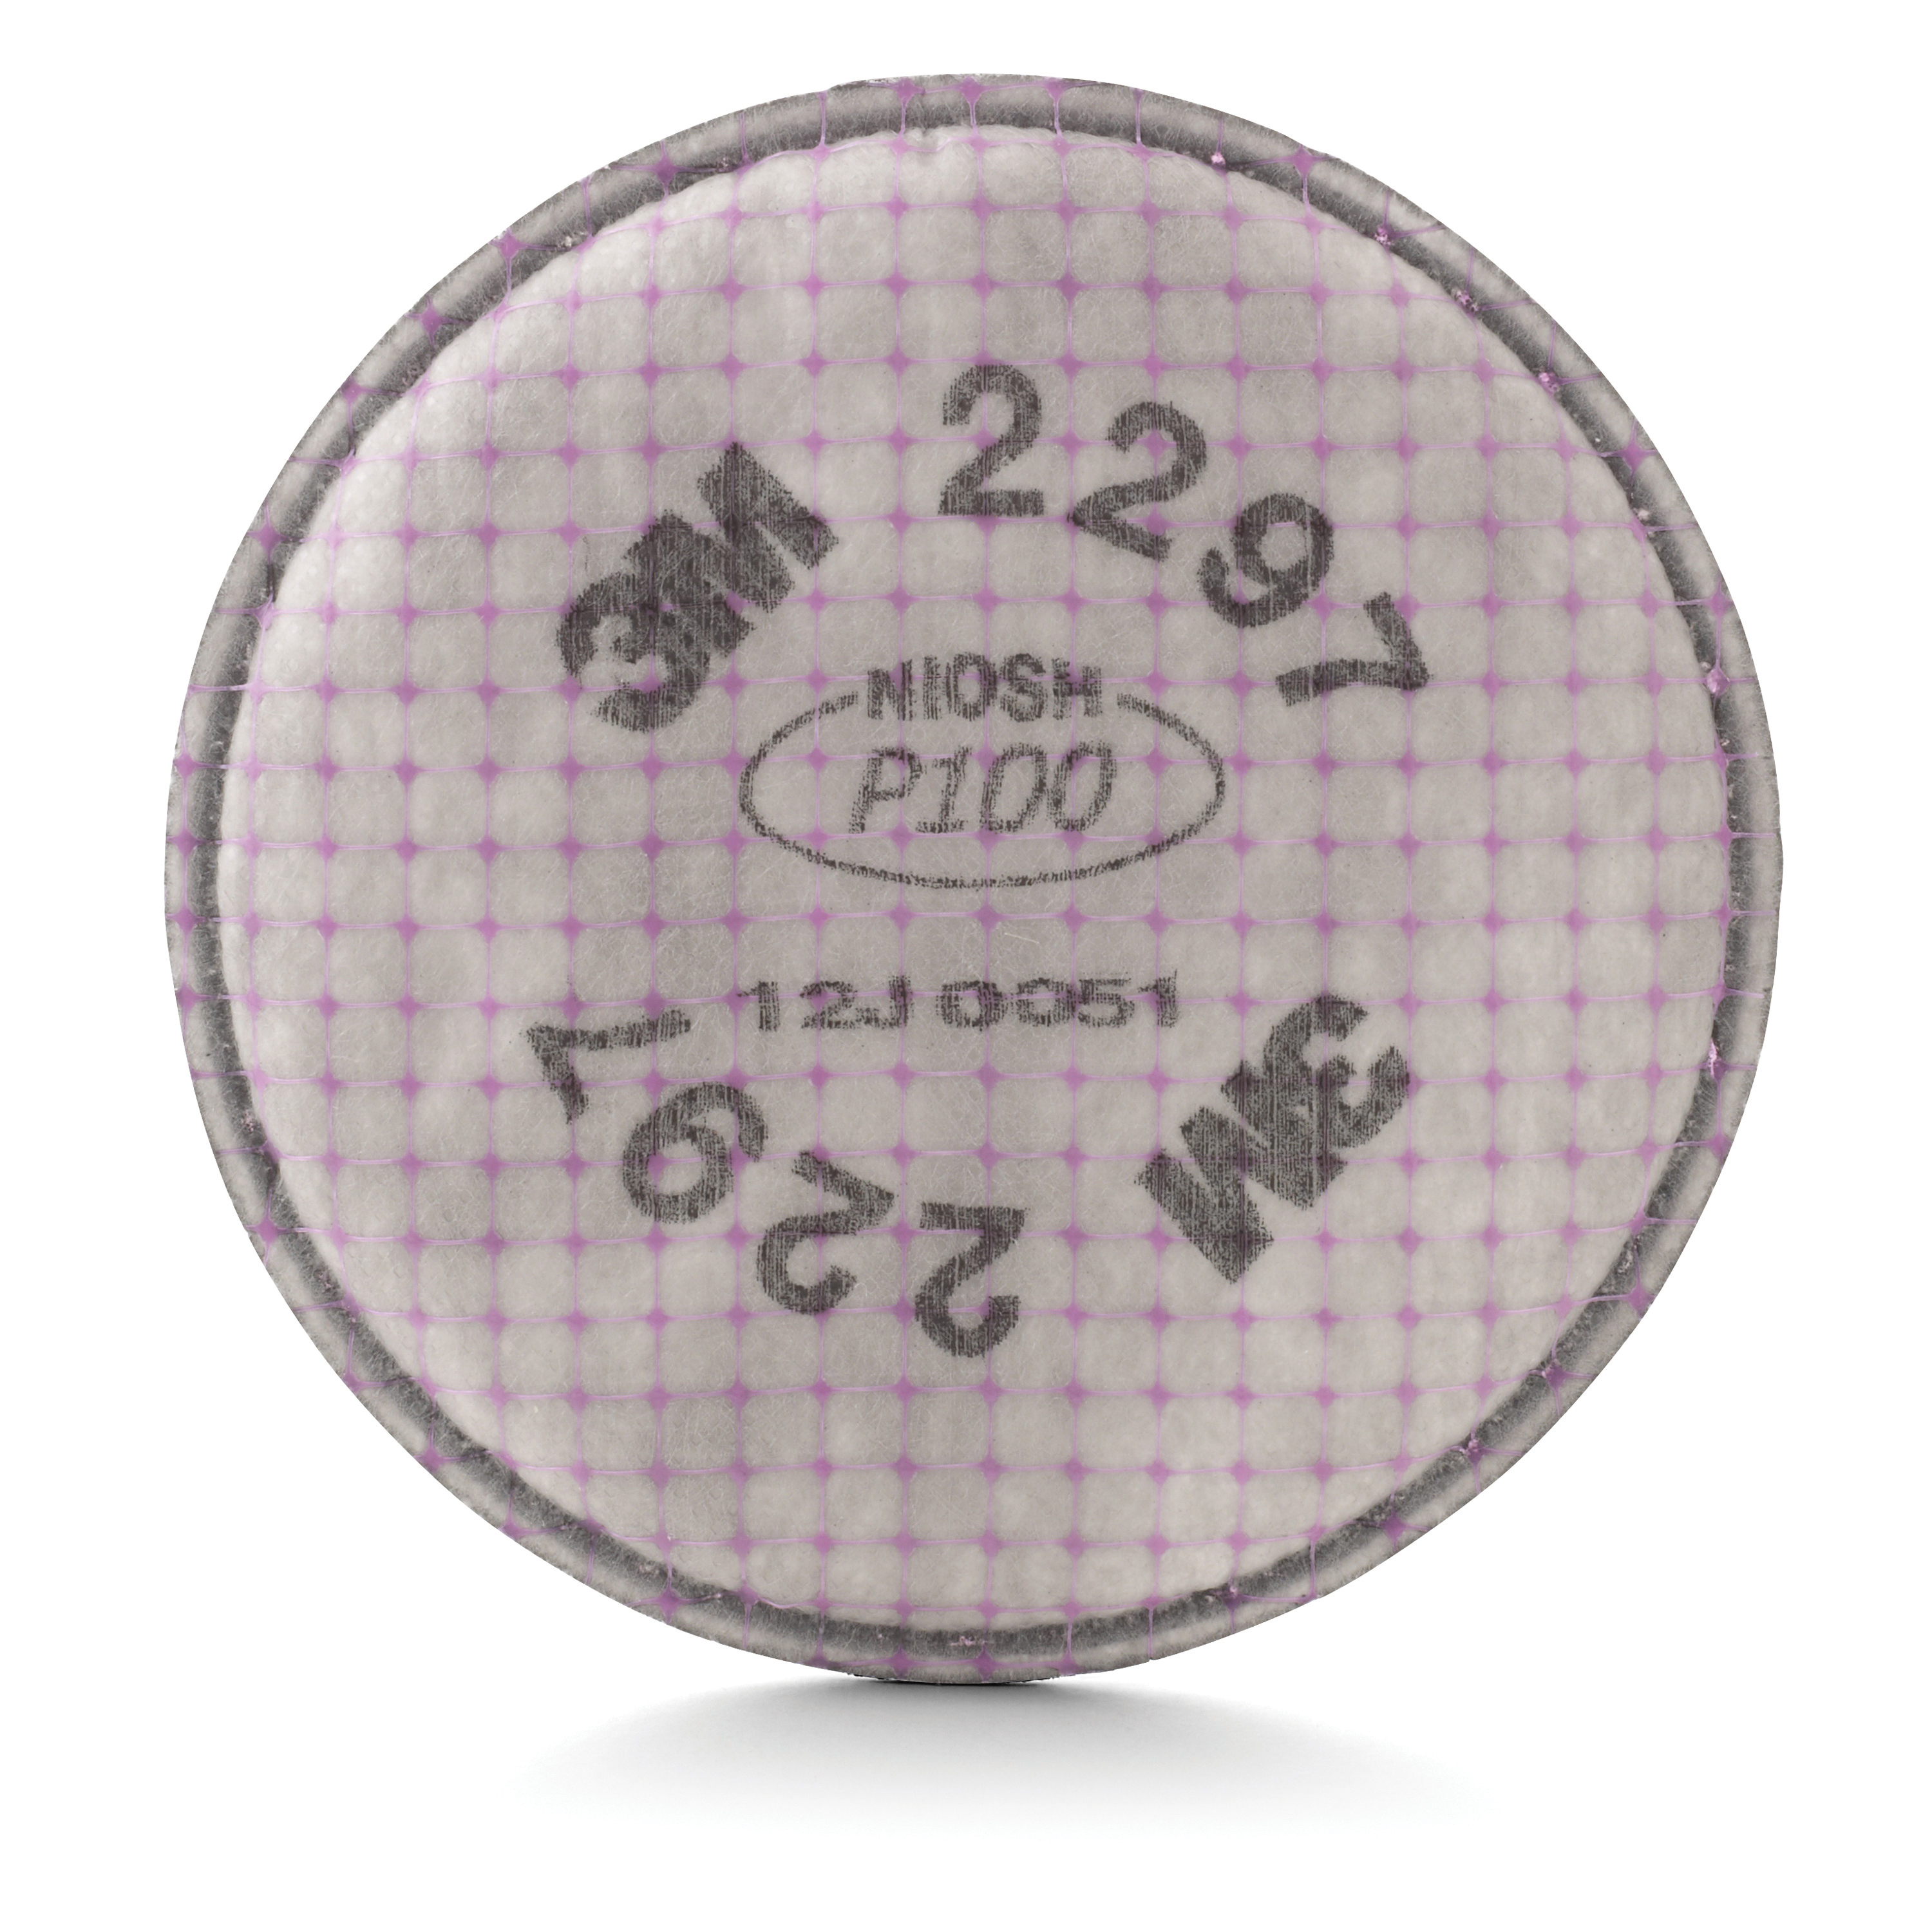 3M™ 051131-17172 Particulate Filter, For Use With 3M™ 5000 and 6000 Series Reusable Respirators, P100, 0.9997 Filter Efficiency, Bayonet Connection, Magenta/Gray, Resists: Non-Oil Based Particulates and Nuisance Organic Vapors